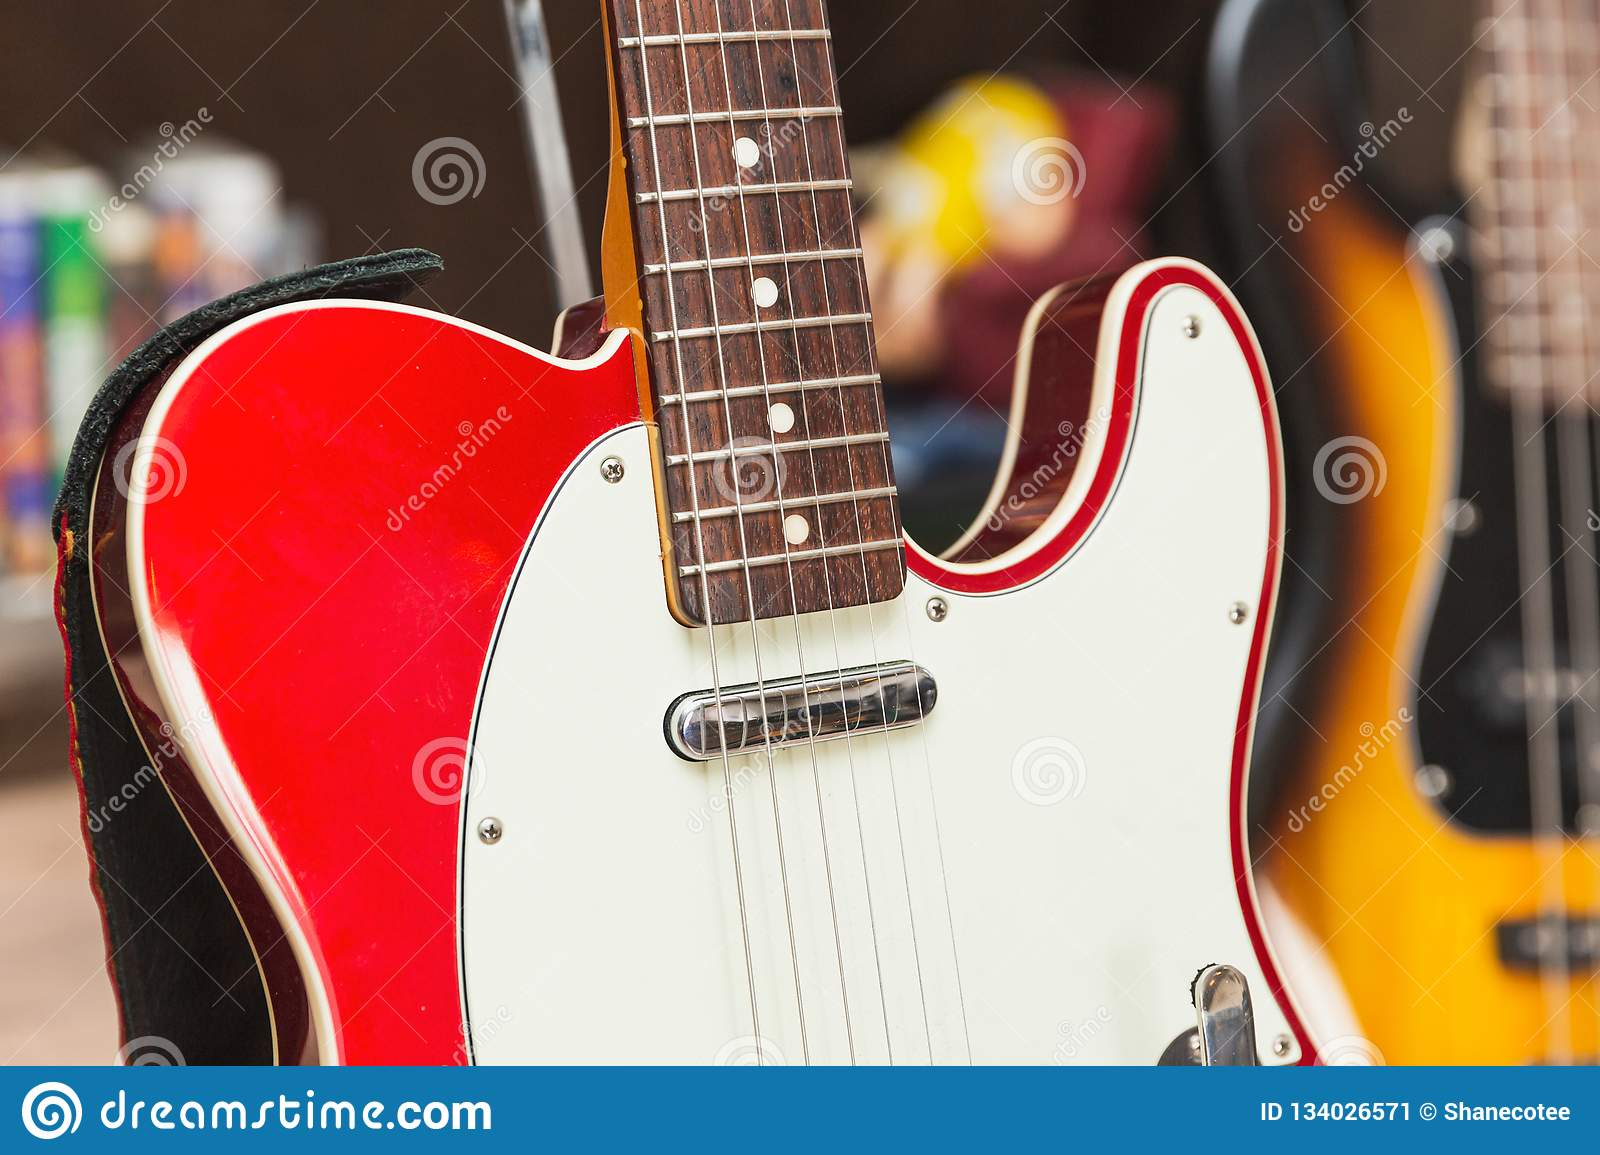 Details Of Classic Red And White Electric Guitar Stock Image